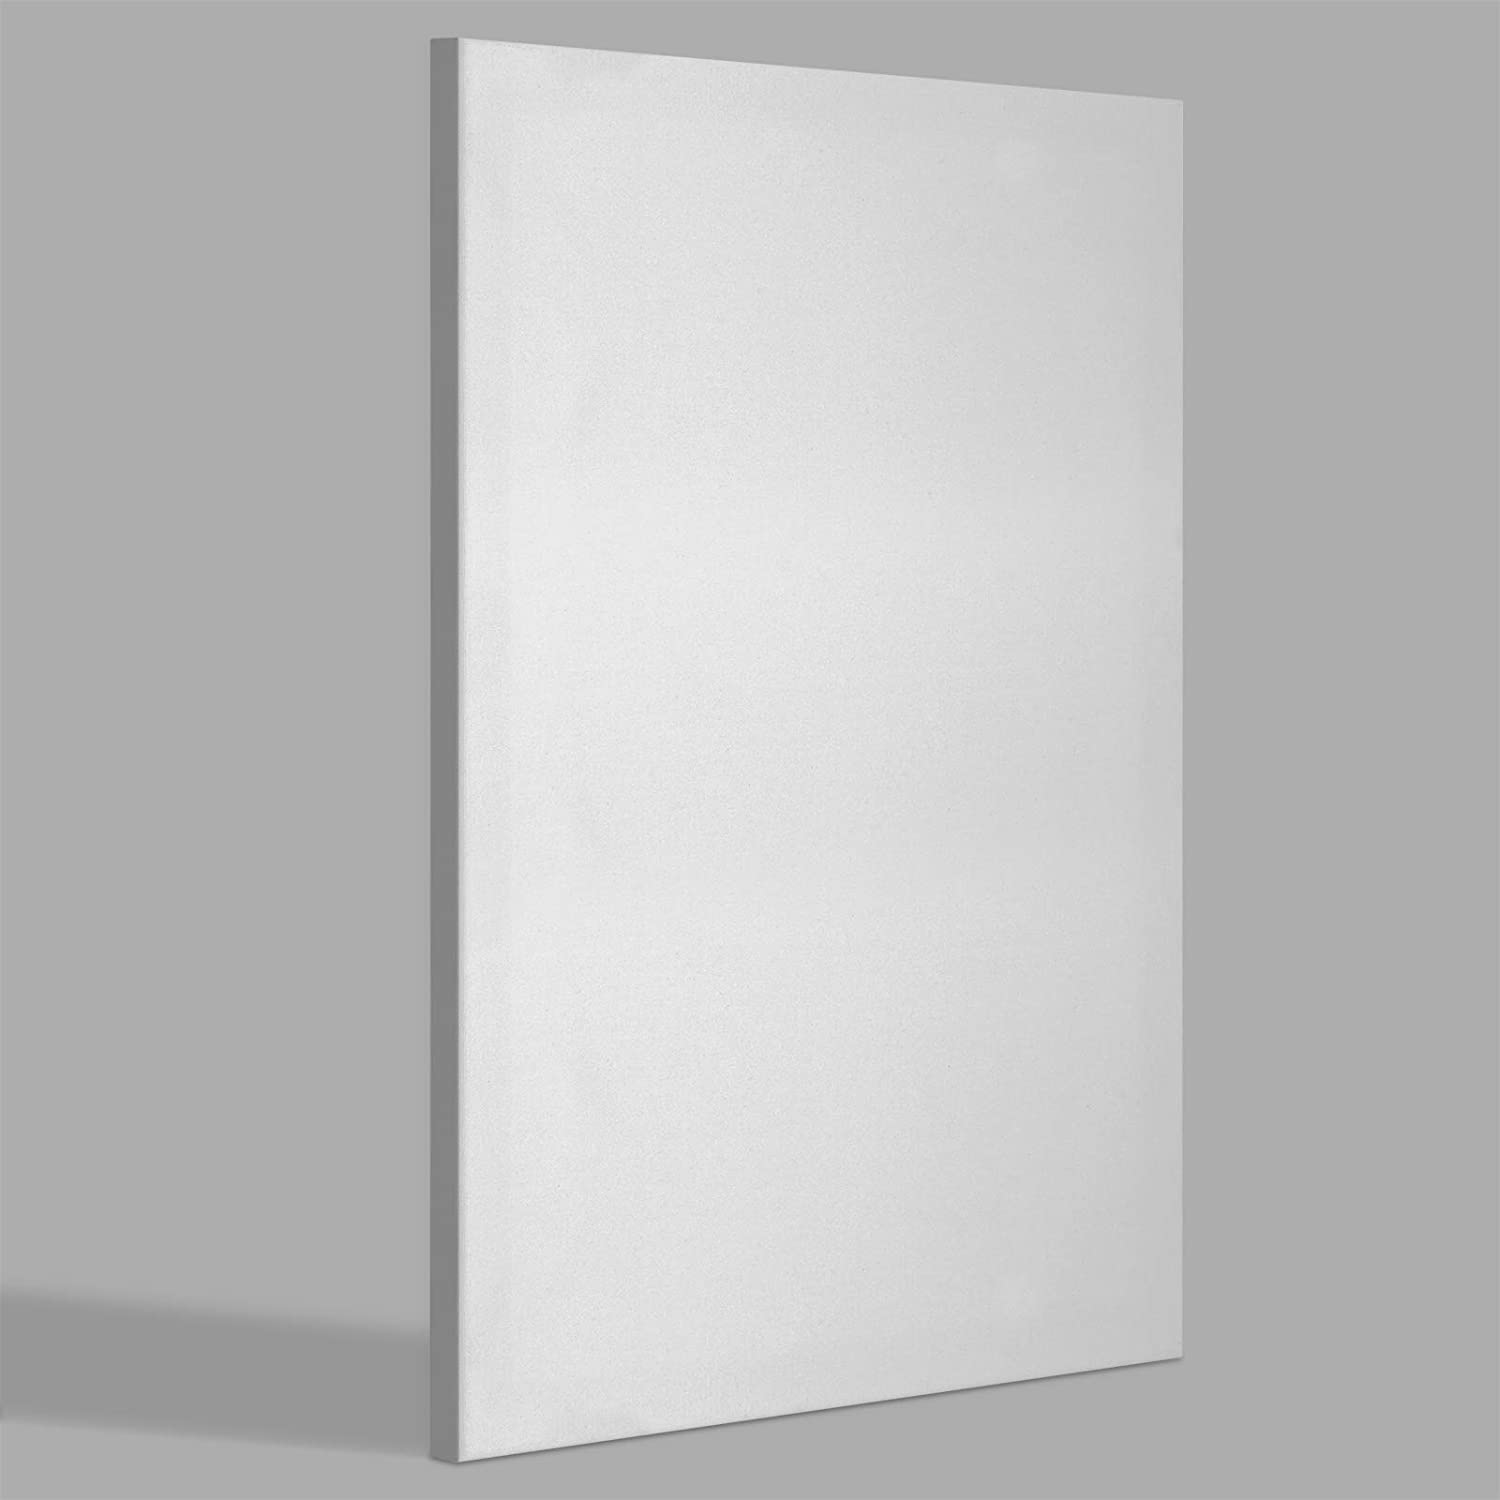 miniature 38 - Americanflat Stretched Canvas in White 100% Cotton Wooden Frames & Acid Free